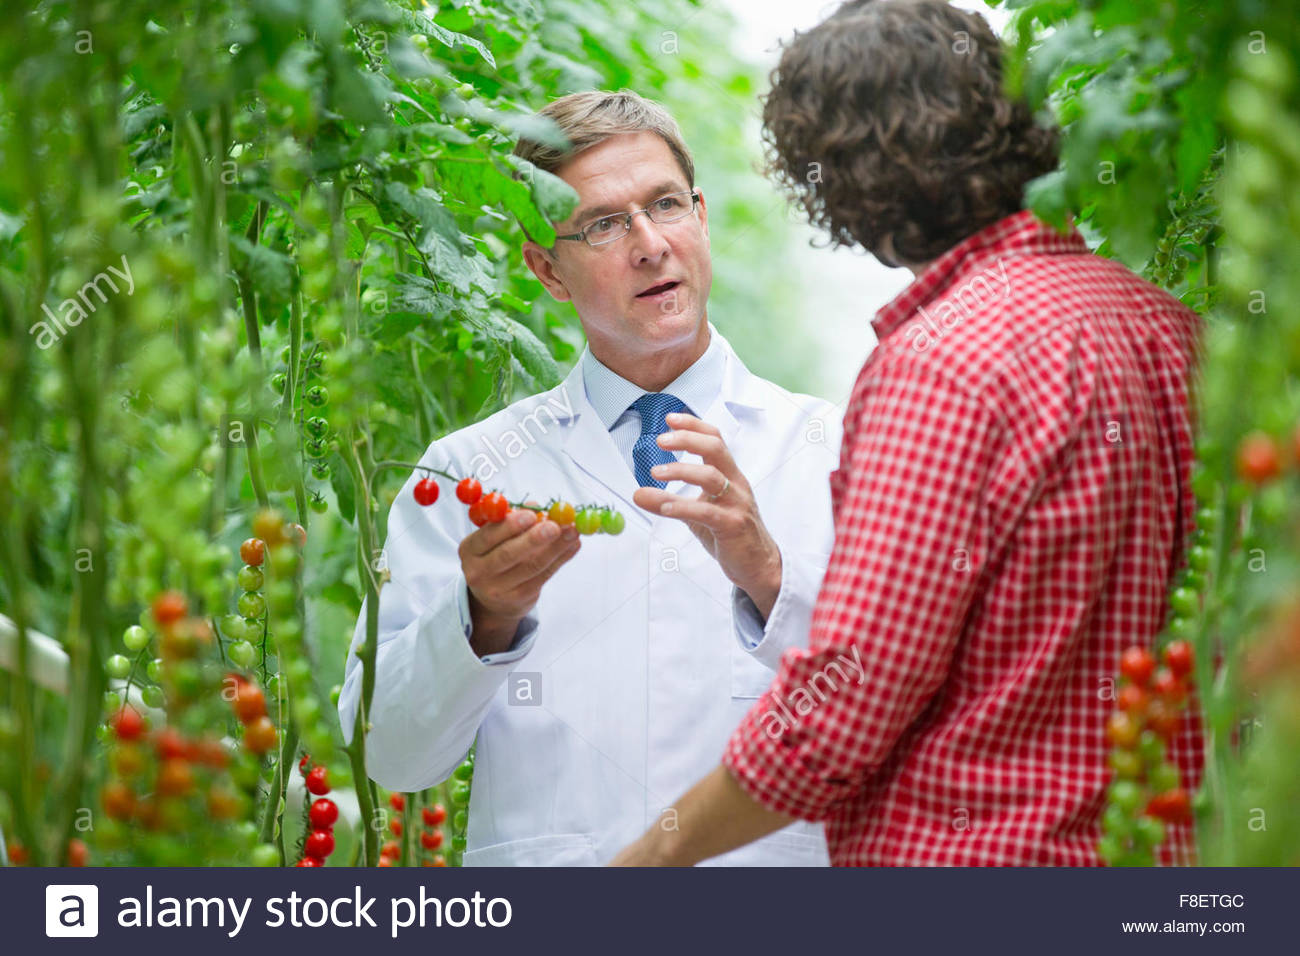 Food scientist and grower examining tomatoes ripening on vine - Stock Image